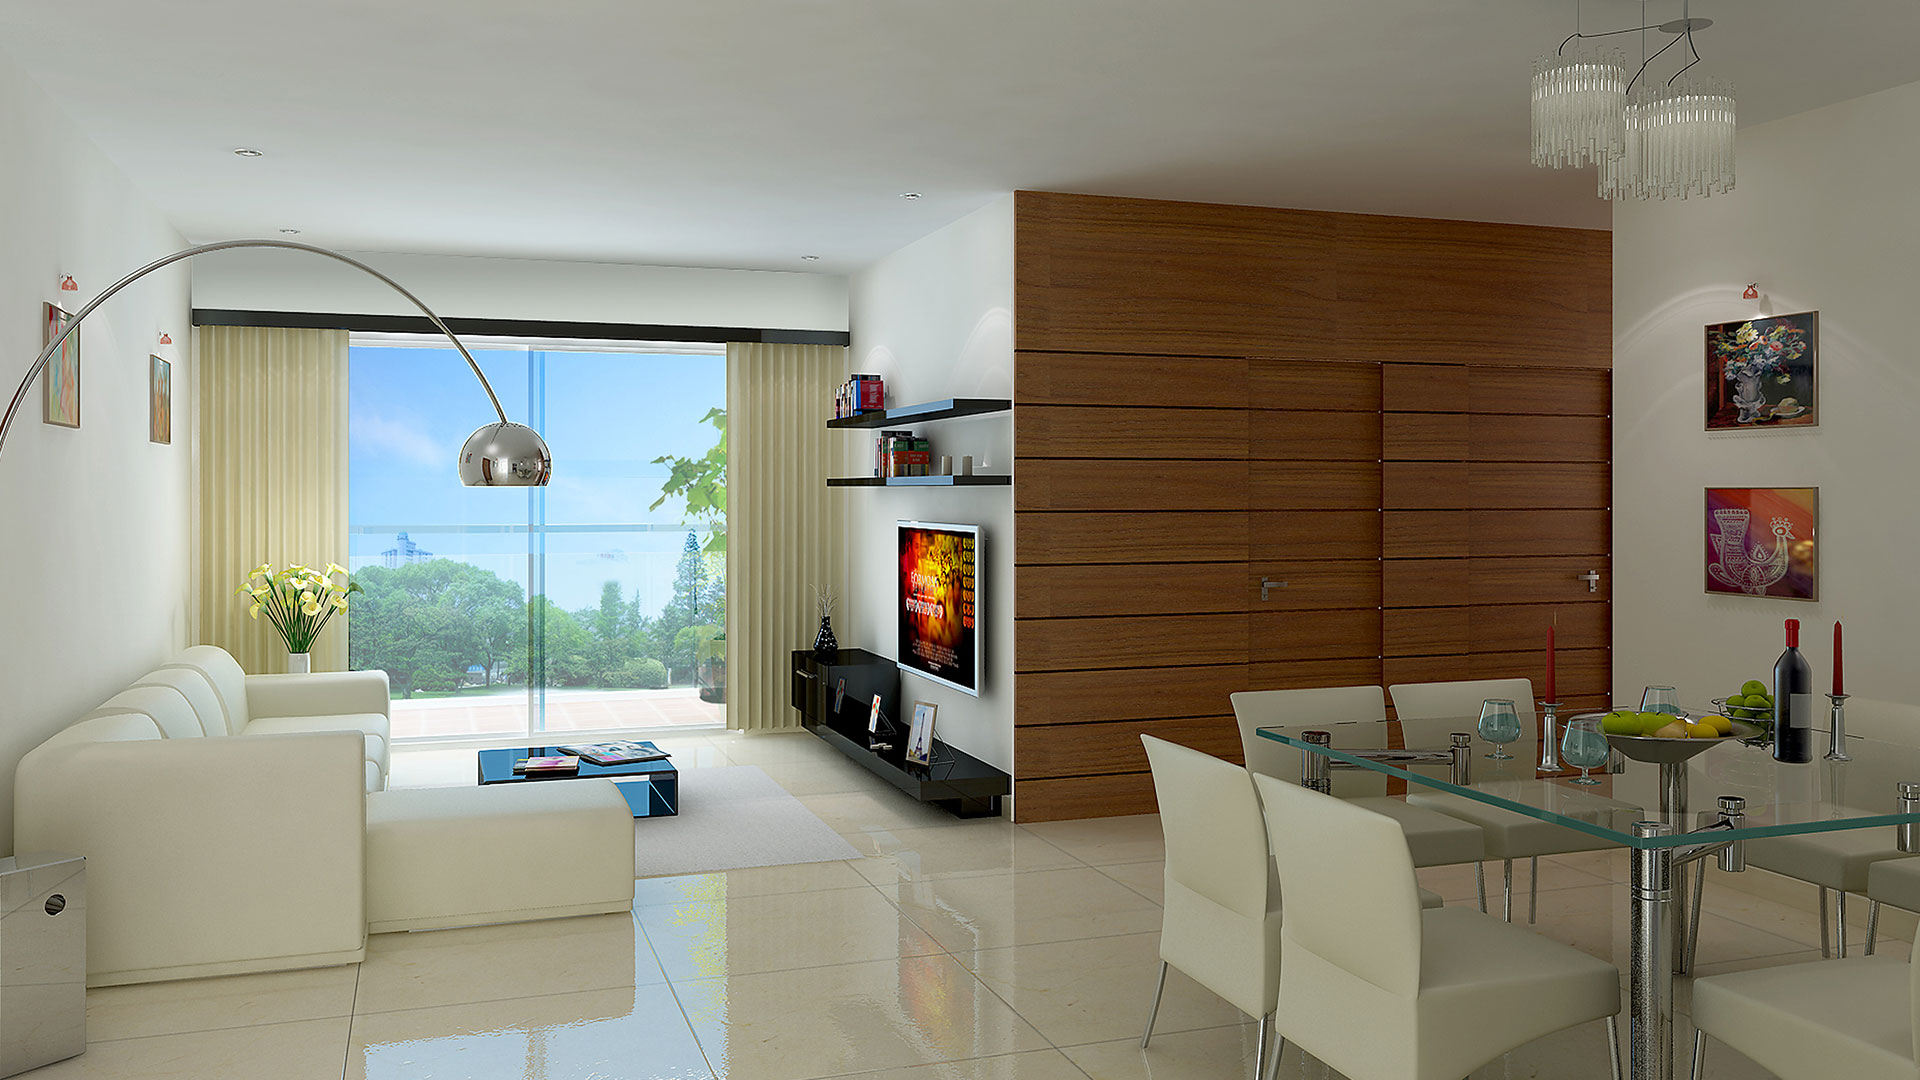 Prestige-Brooklyn-Heights-Apartment-in-JP-Nagar-Bangalore-Image-04